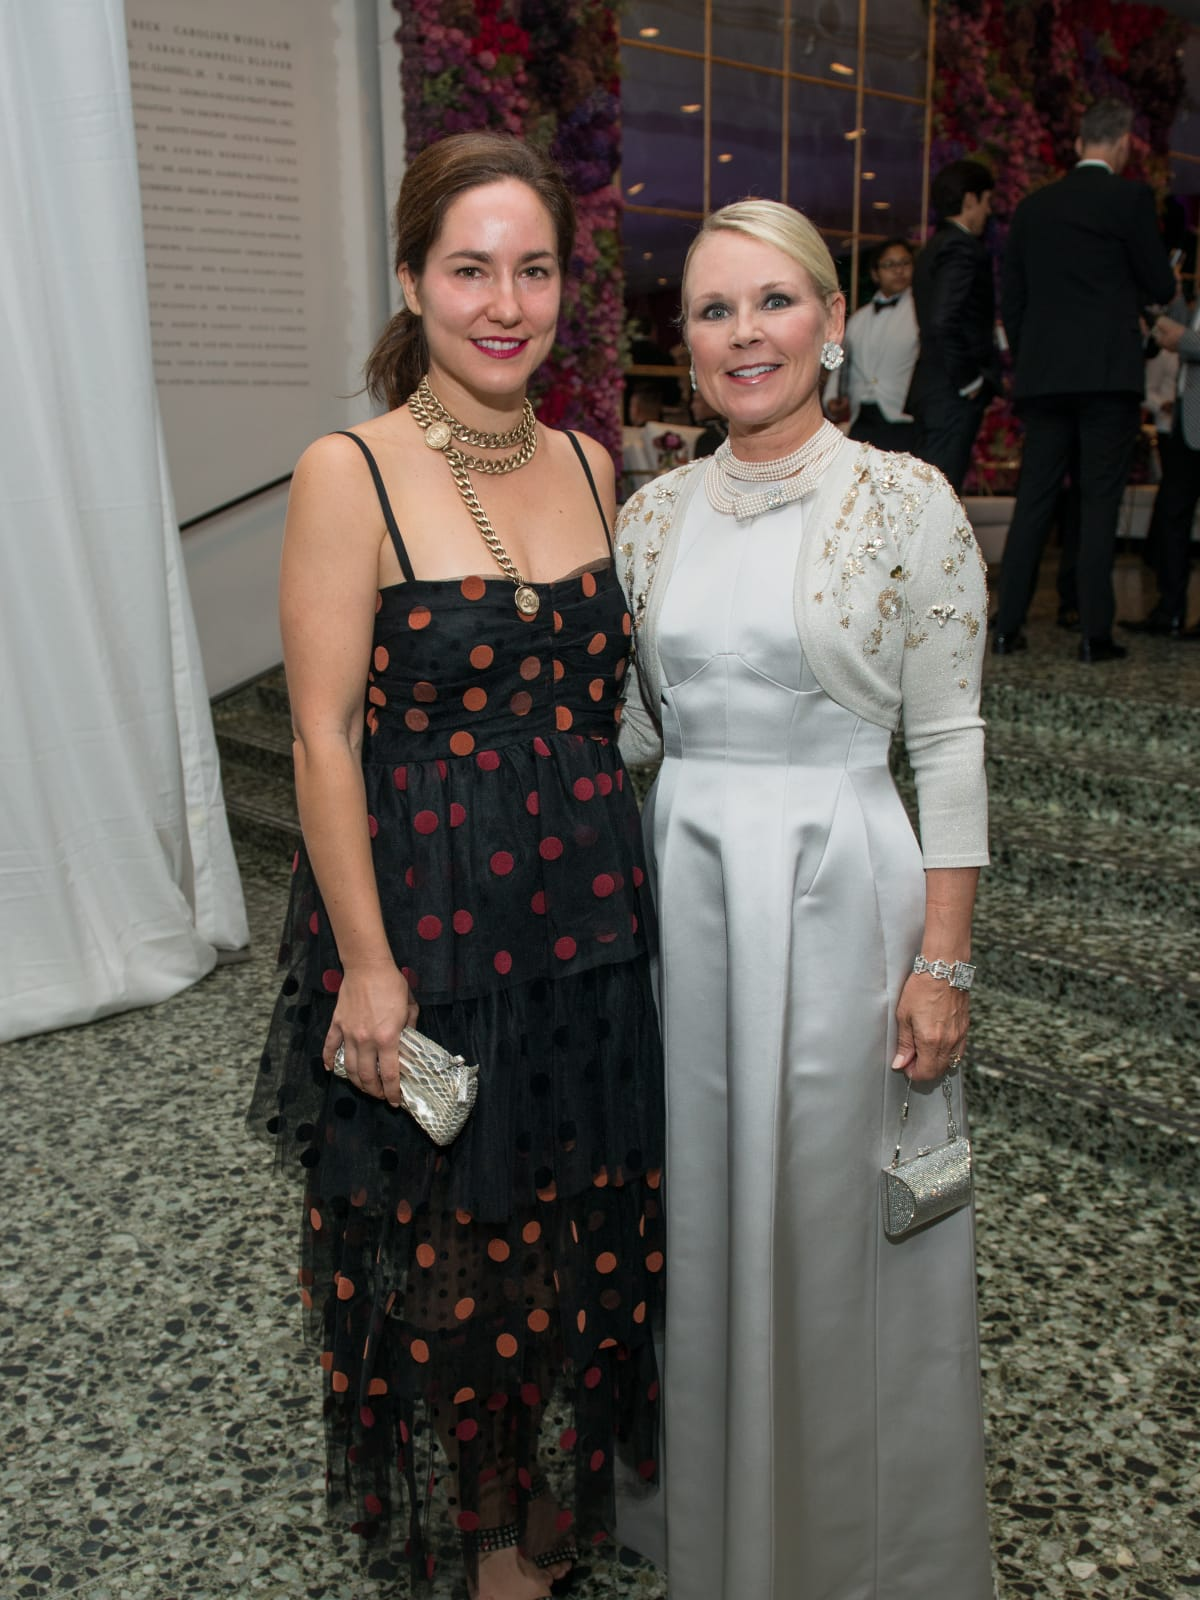 Kelly Barnhart, Mindy Hildebrand at MFAH Grand Gala Ball2017